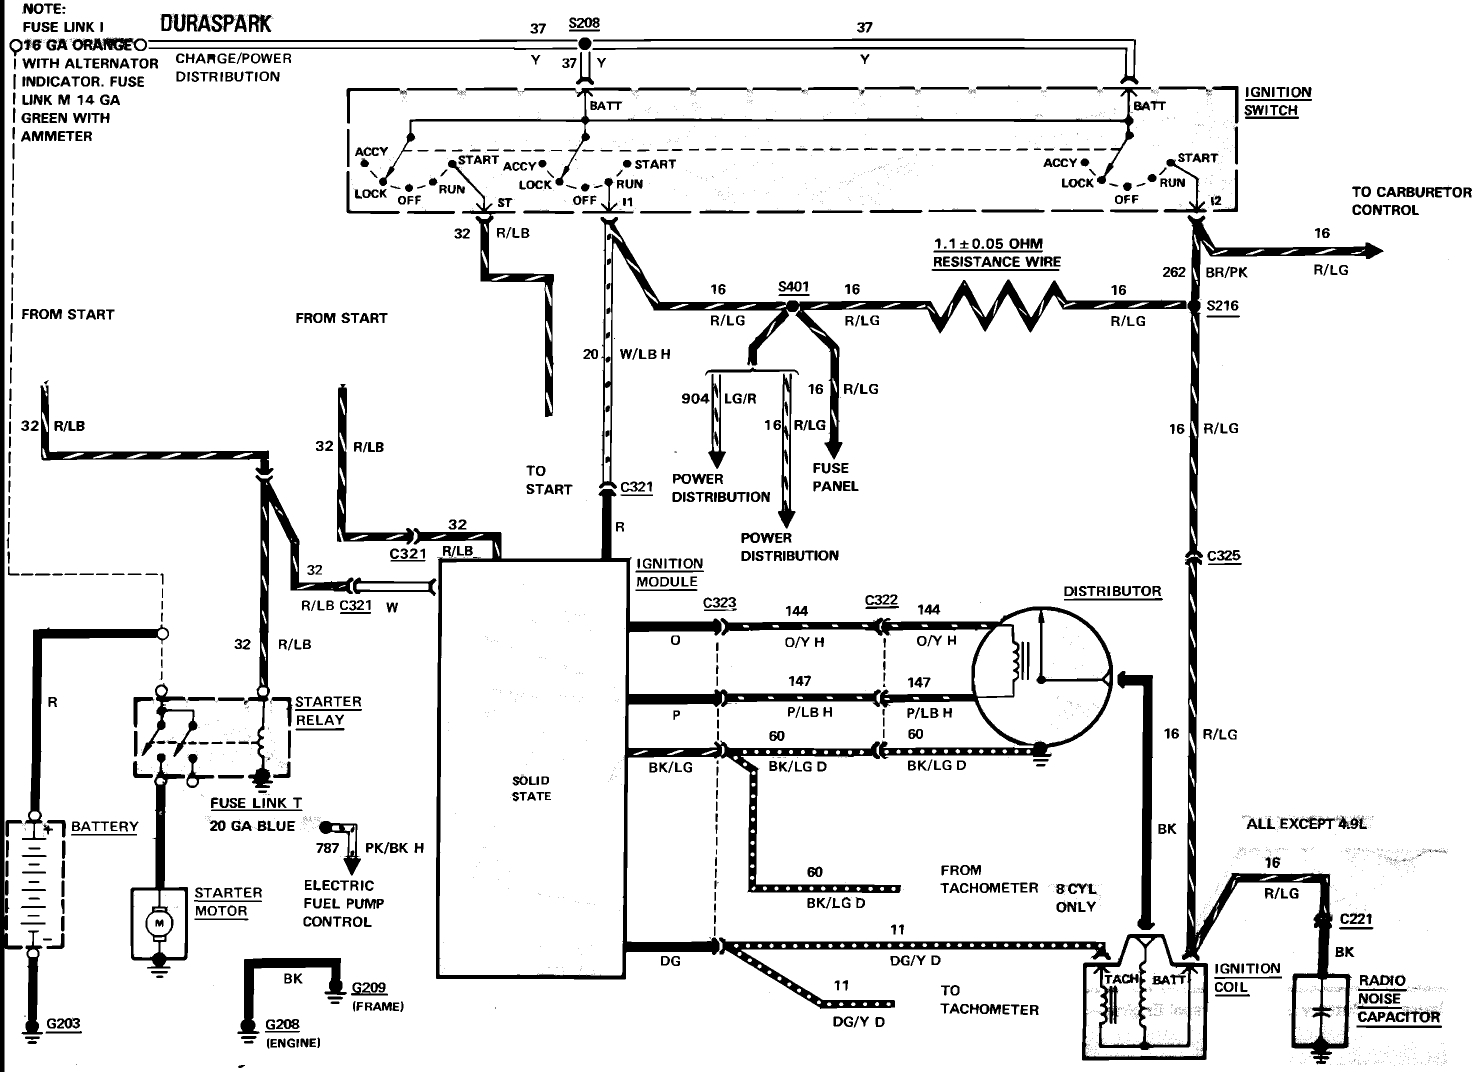 2007 ford f 150 running light wiring diagram 1989 ford f150 ignition wiring diagram | free wiring diagram